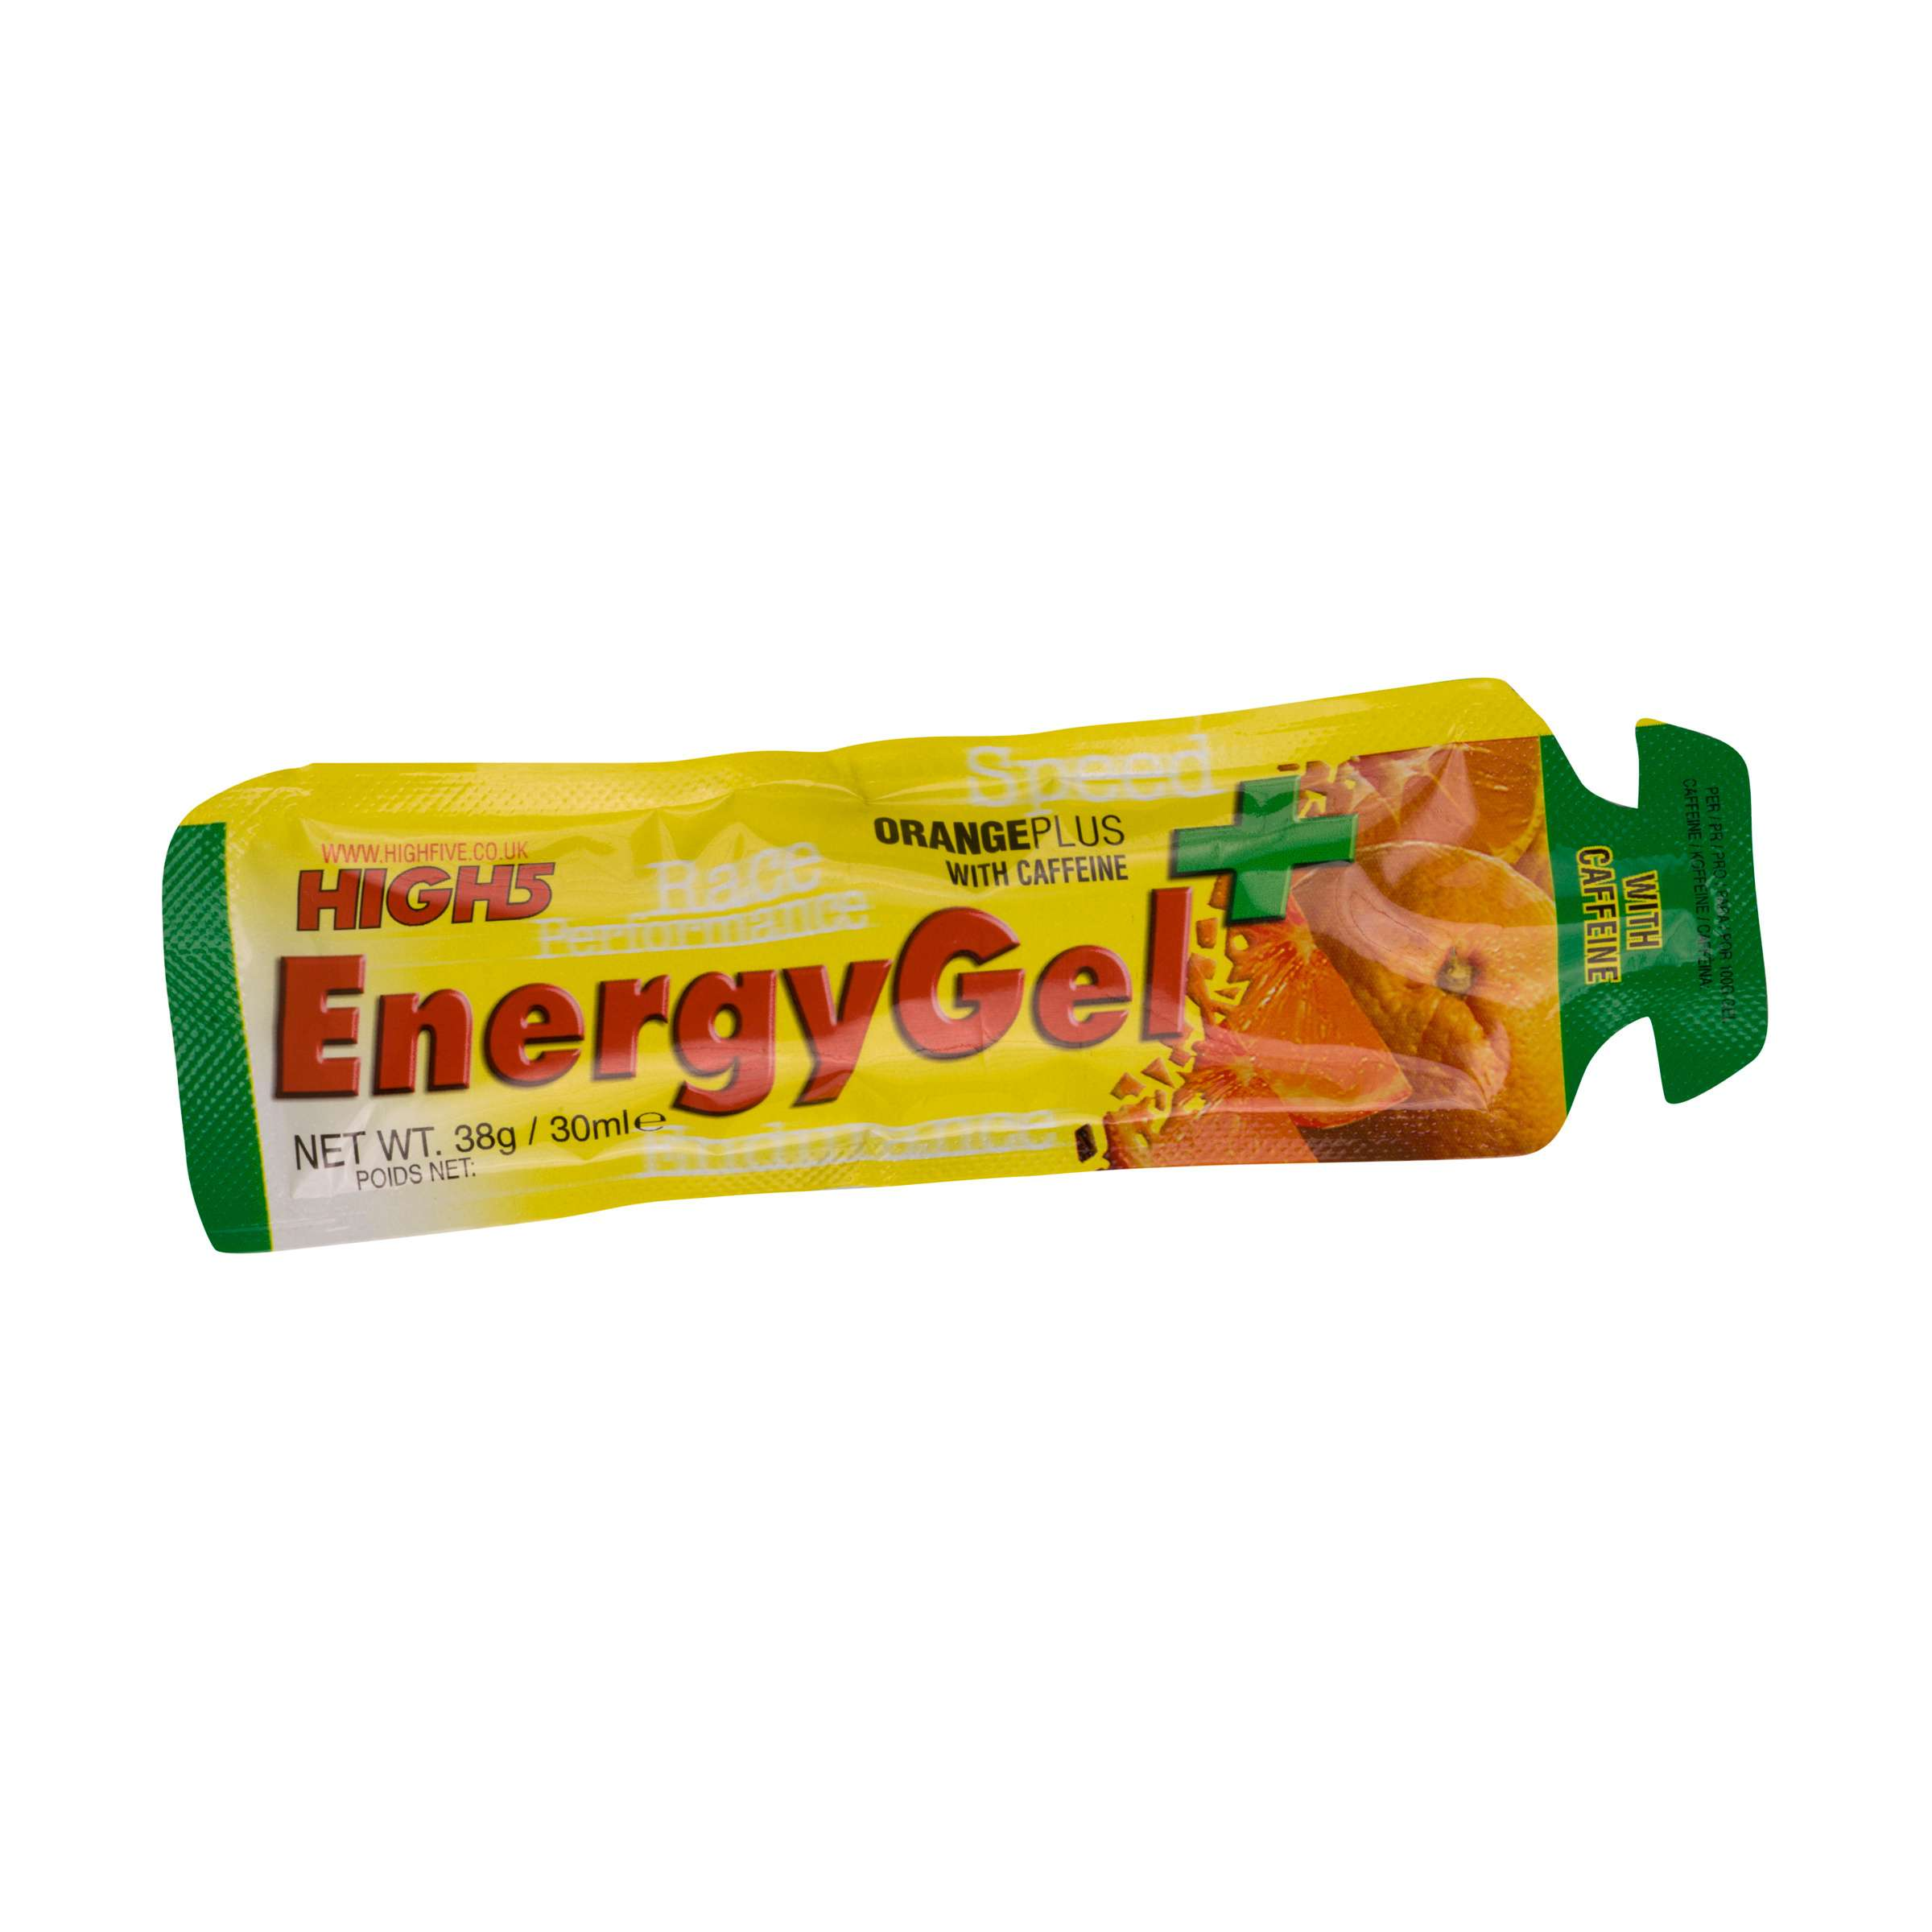 HIGH 5 Energy Gel with Caffeine - Orange